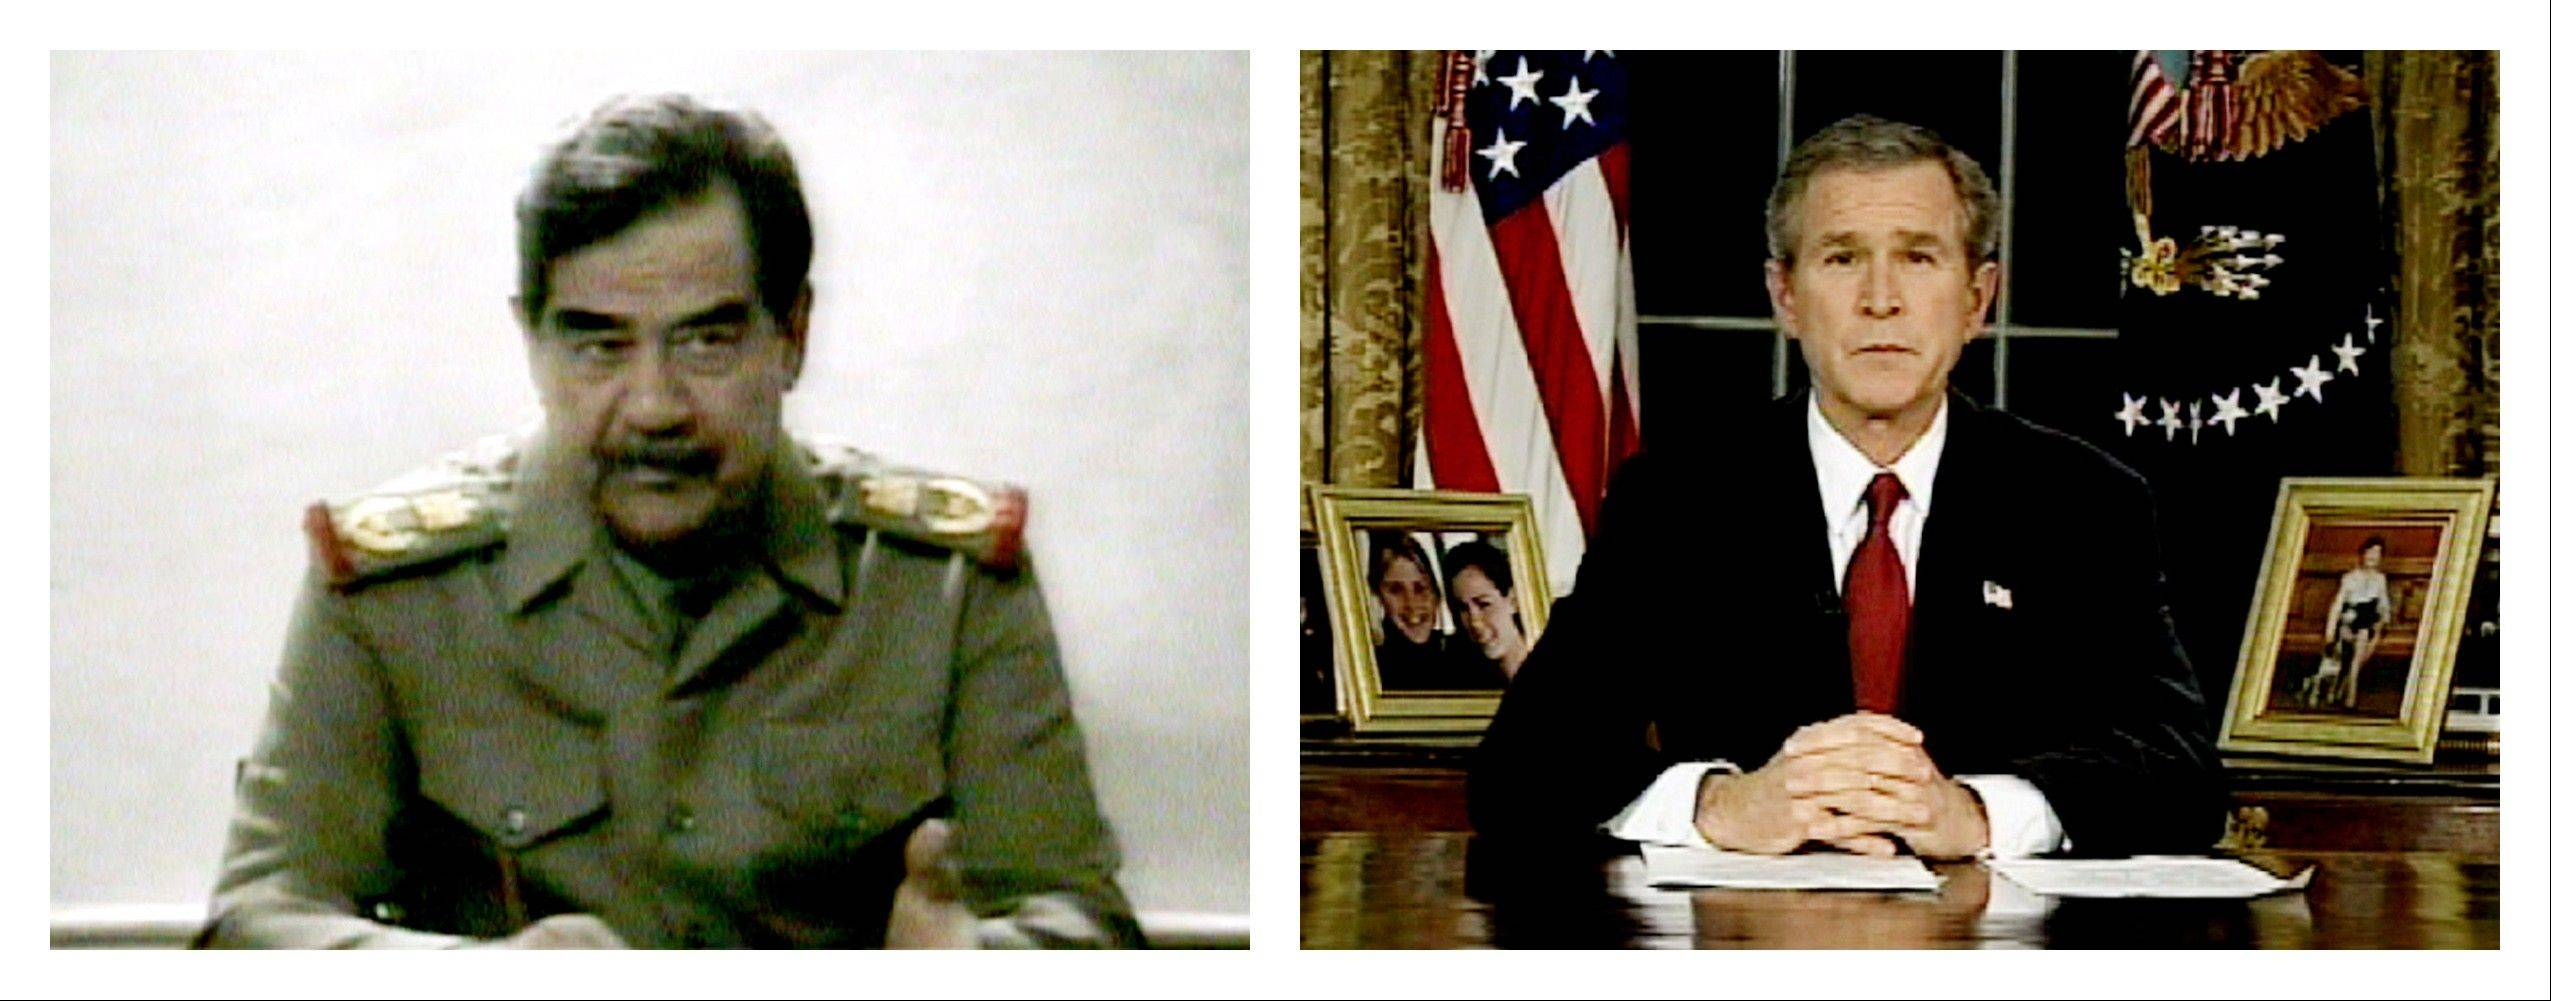 FILE - This combination of video images shows Saddam Hussein, left, on Iraqi television on Thursday, March 20, 2003 and President Bush addressing the nation from the Oval Office at the White House on Wednesday, March 19, 2003.